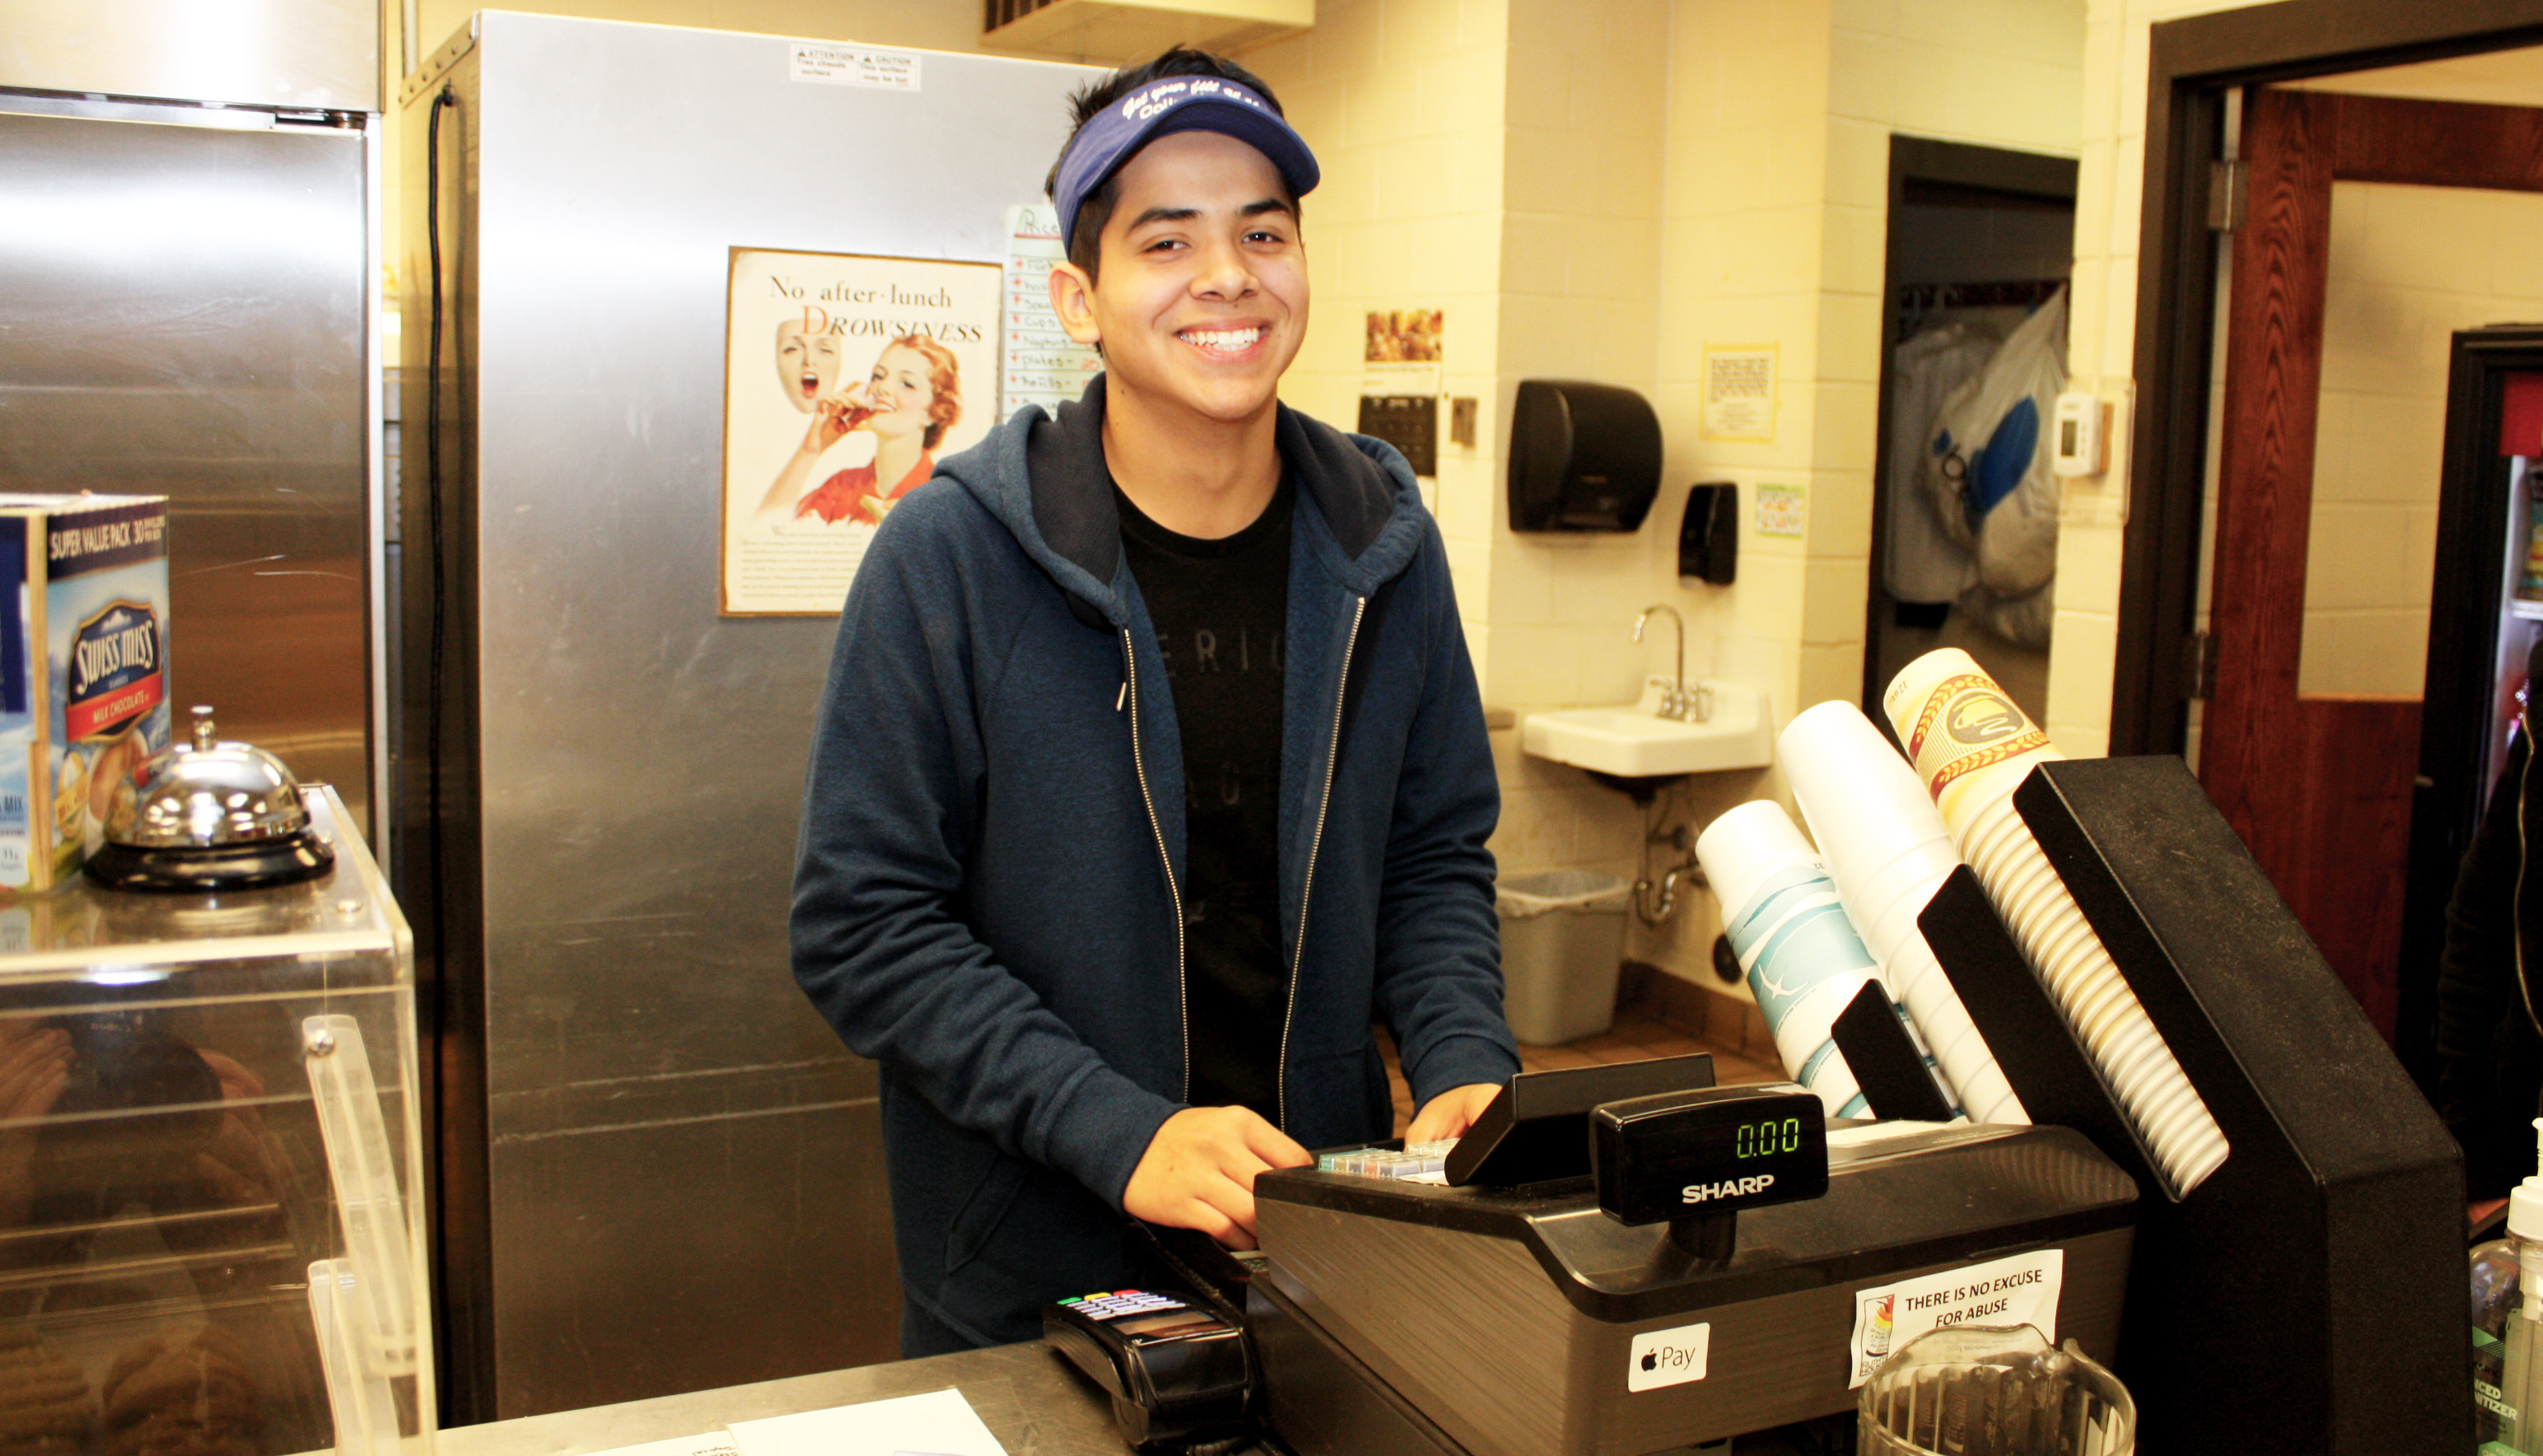 Andres Rodriguez behind the register at the Campus Grill. The diligent student will finish his program a year early, with an extra degree, and manages a part-time job.